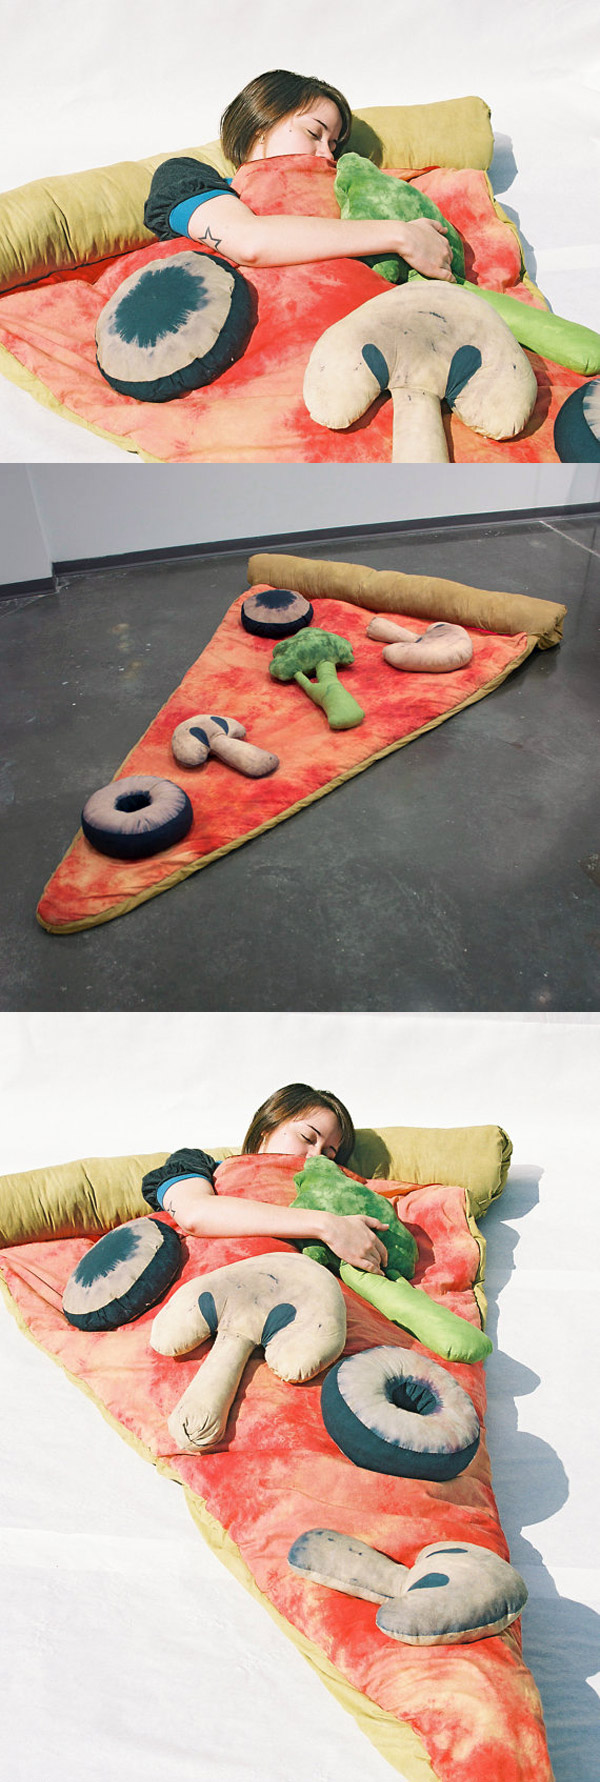 La cama-pizza